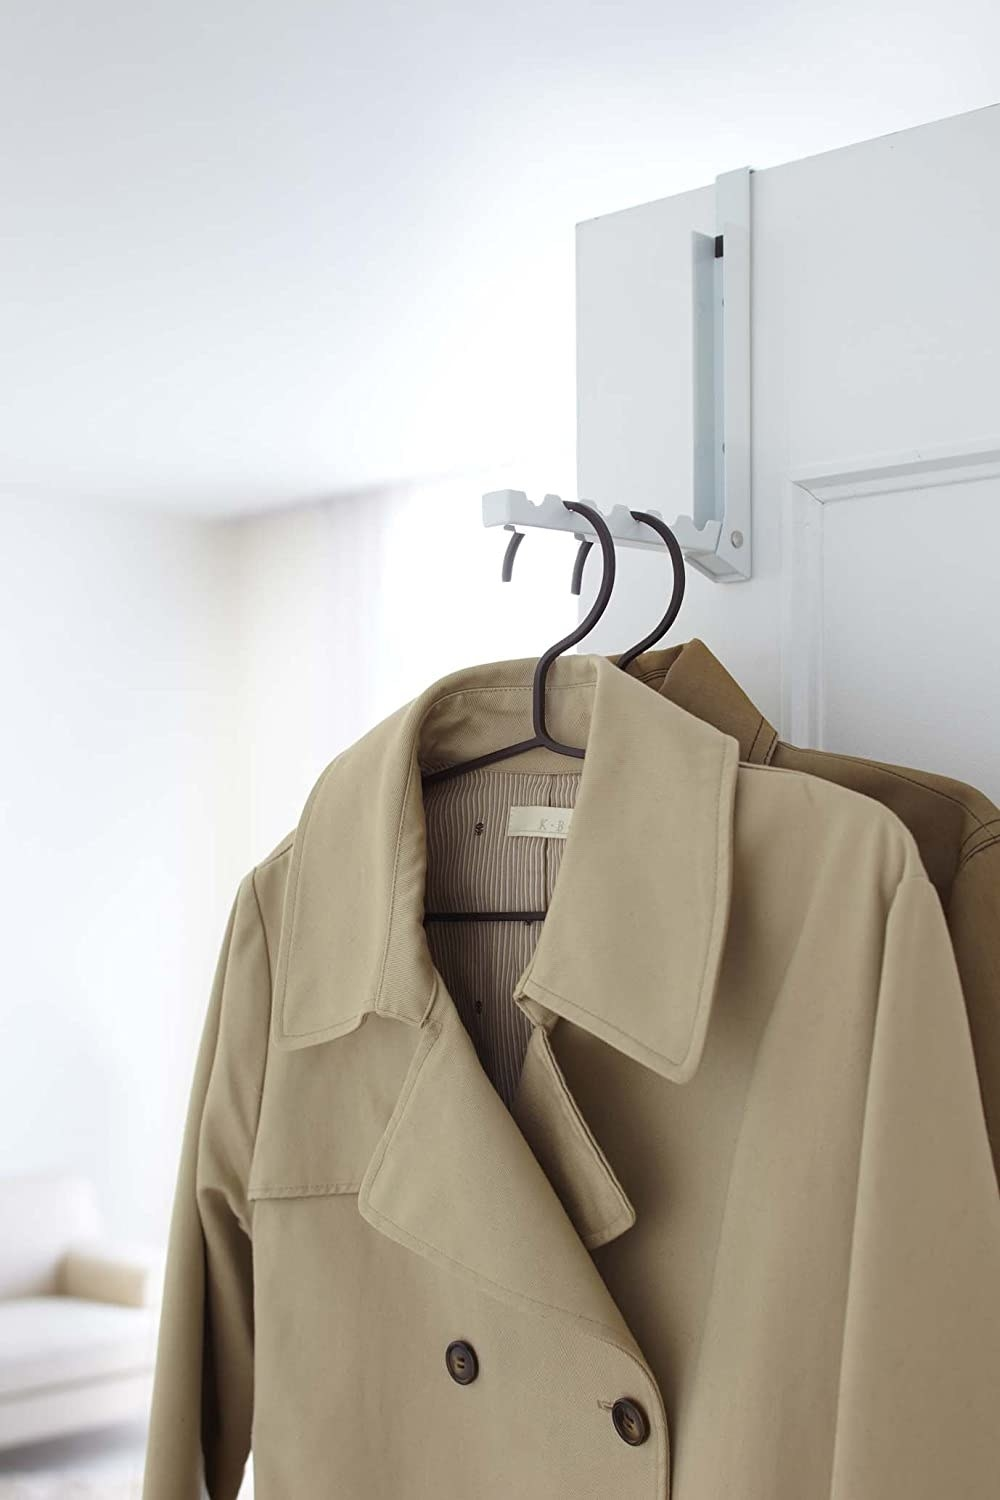 A folding hook on a door frame holding several coats on clothes hangers